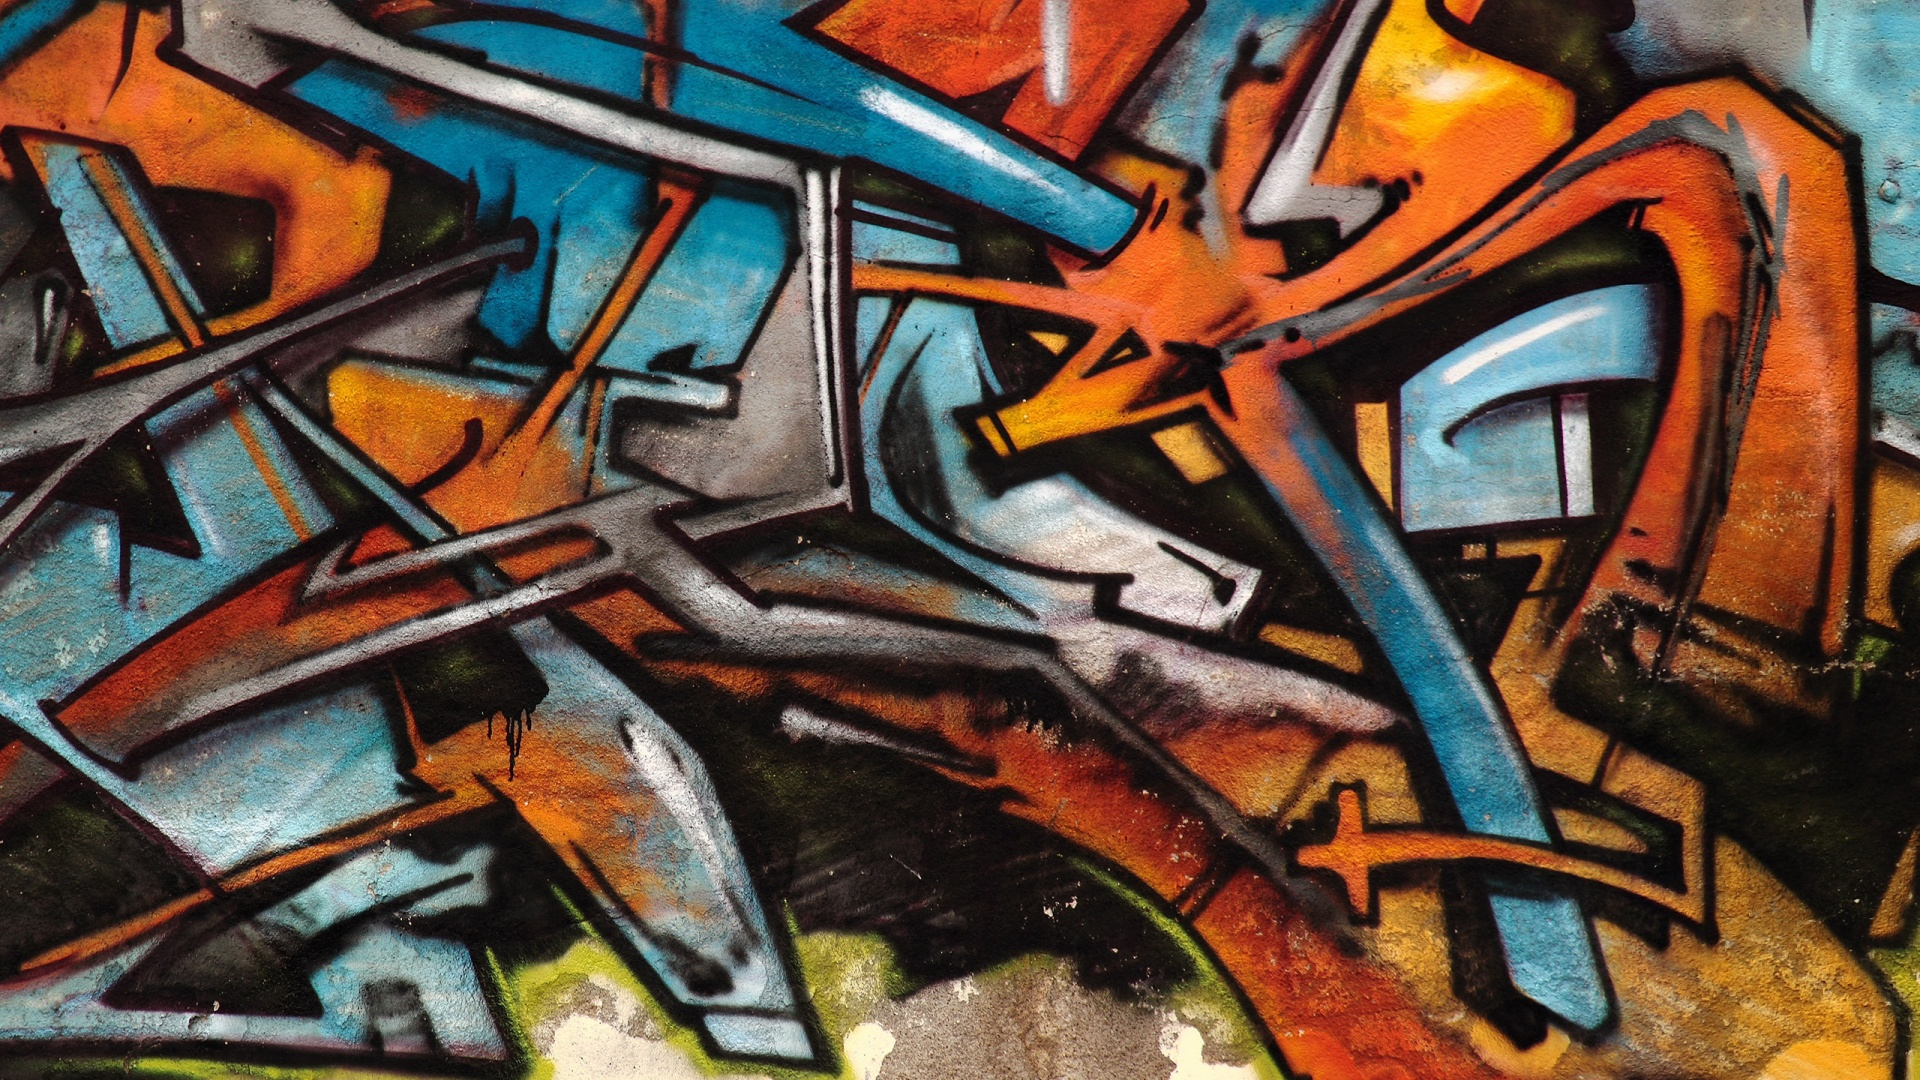 HD-Graffiti-wallpaper-wp3406682